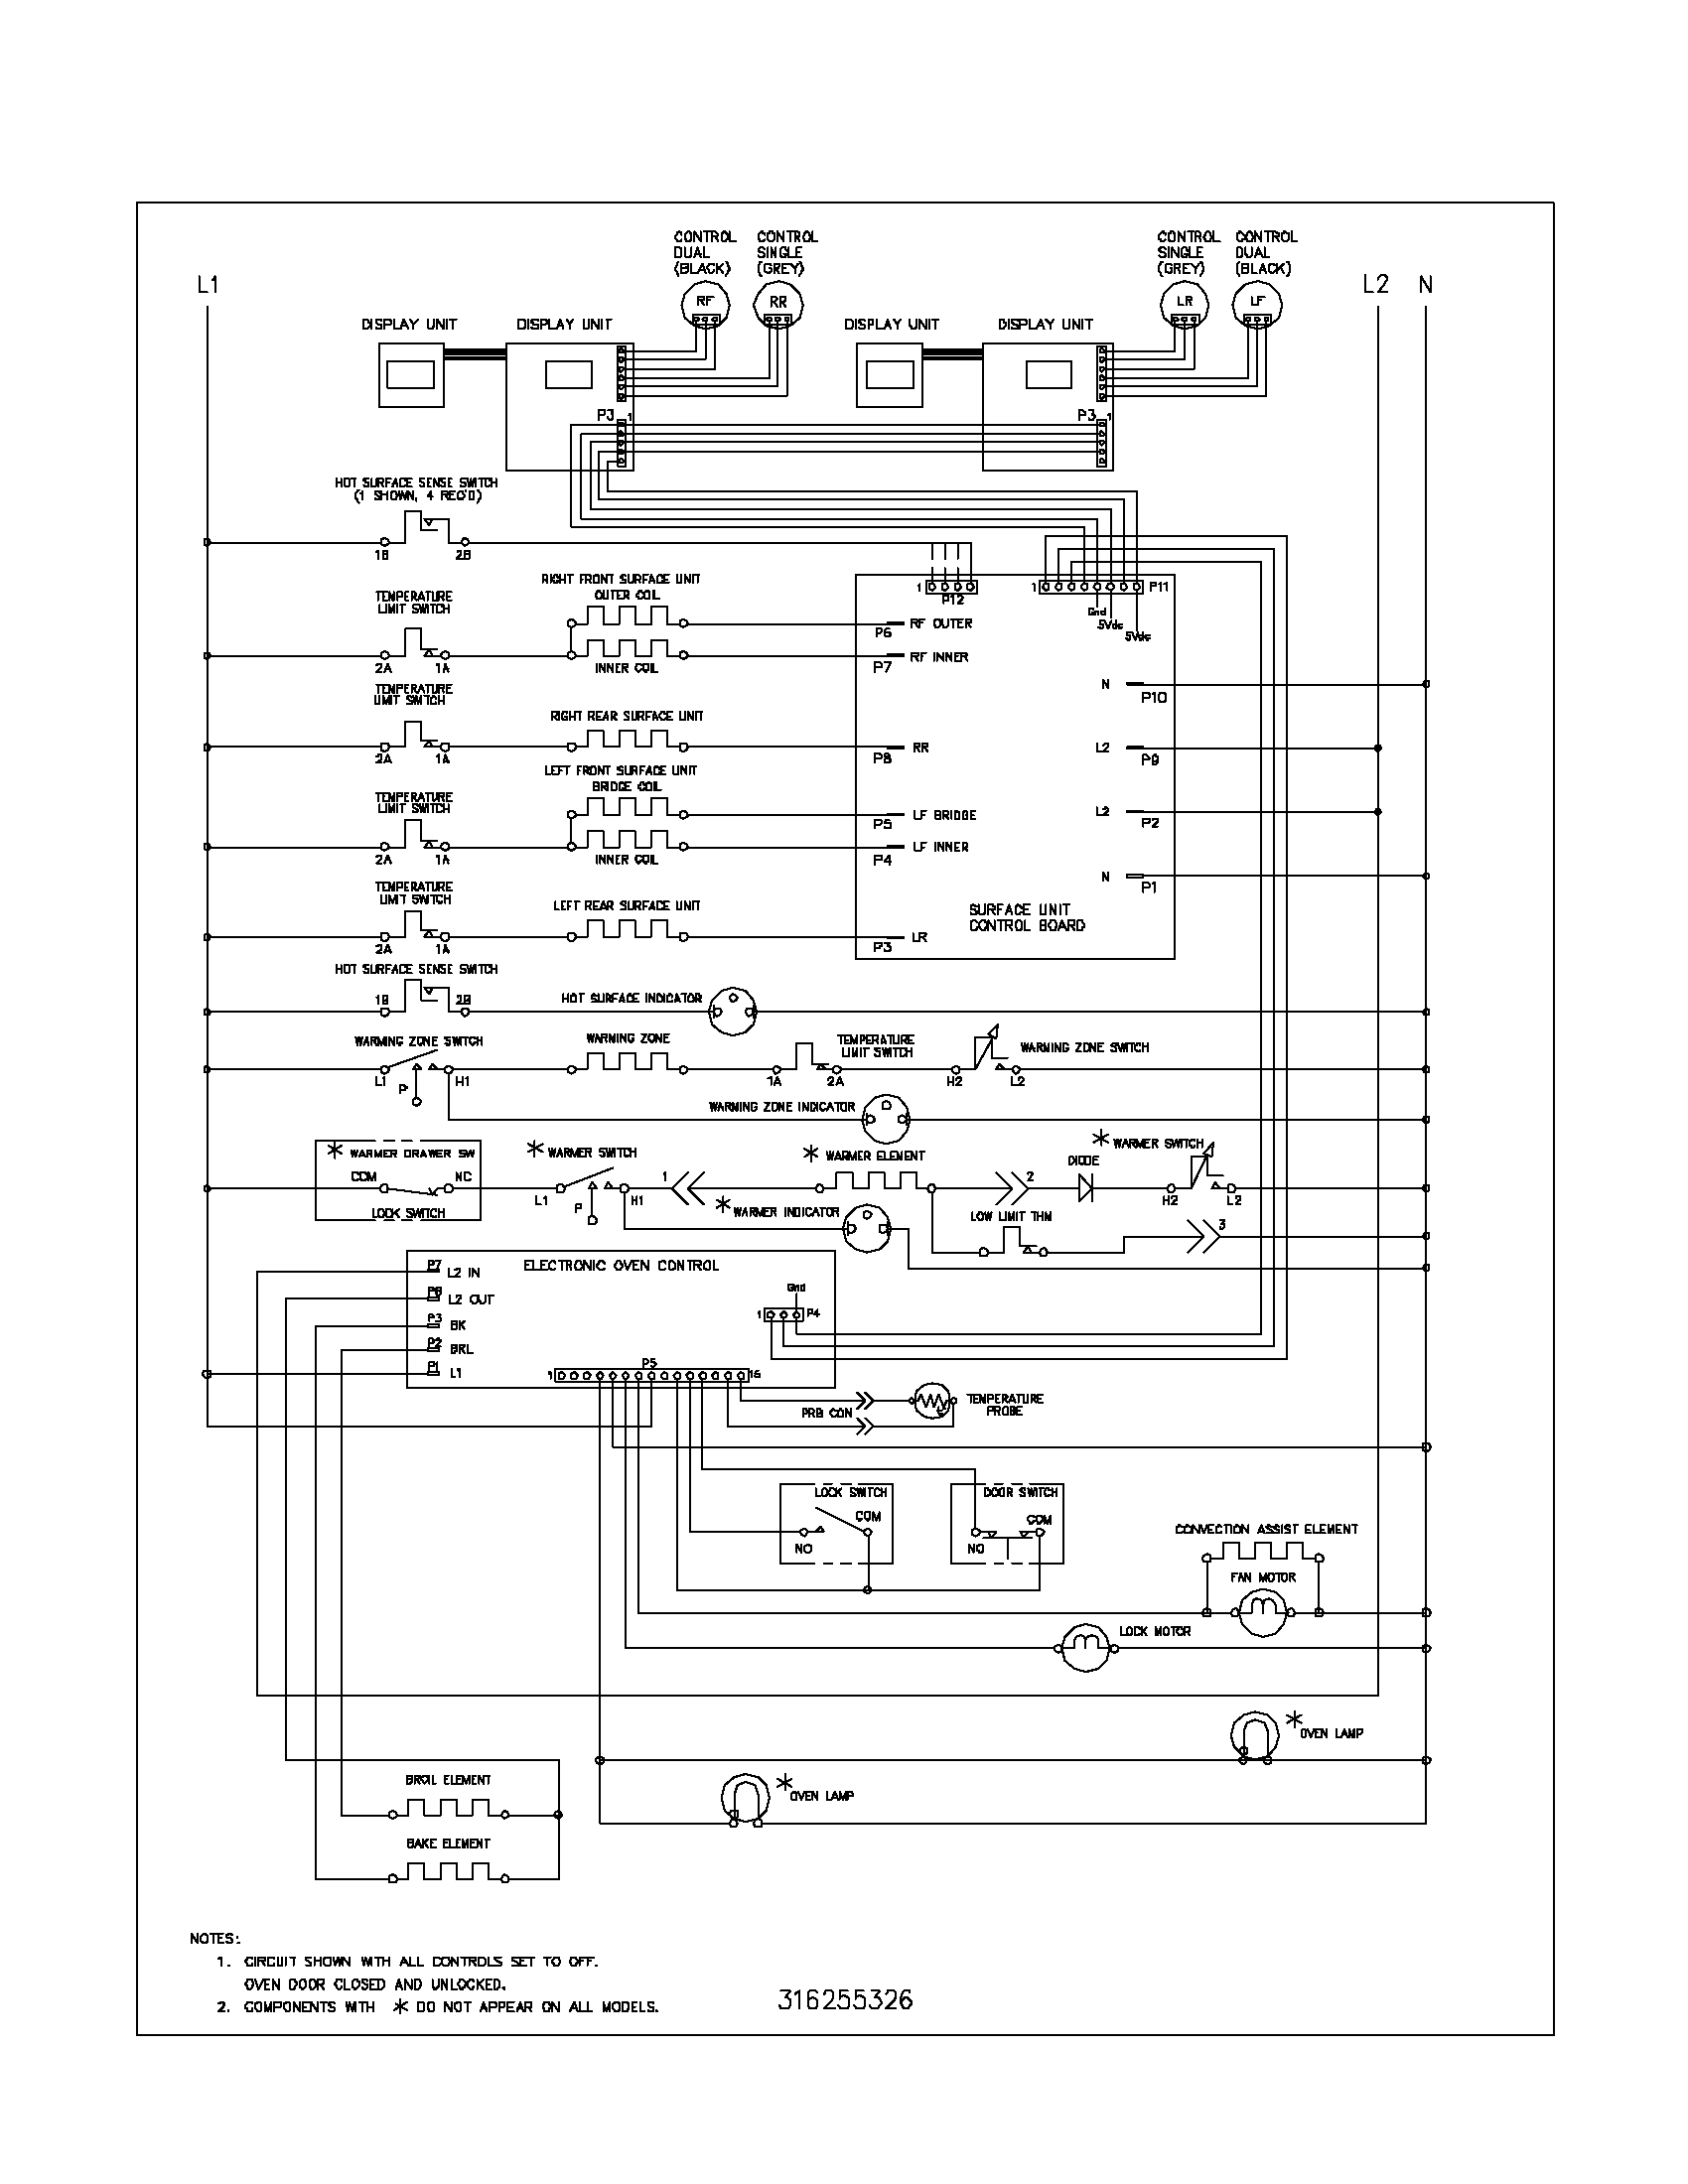 [SCHEMATICS_4FD]  General Electric Bake Element Wiring Diagram - 1960 Lincoln Convertible Wiring  Diagrams for Wiring Diagram Schematics | Wiring Diagram For Electric Wall Clock |  | Wiring Diagram Schematics